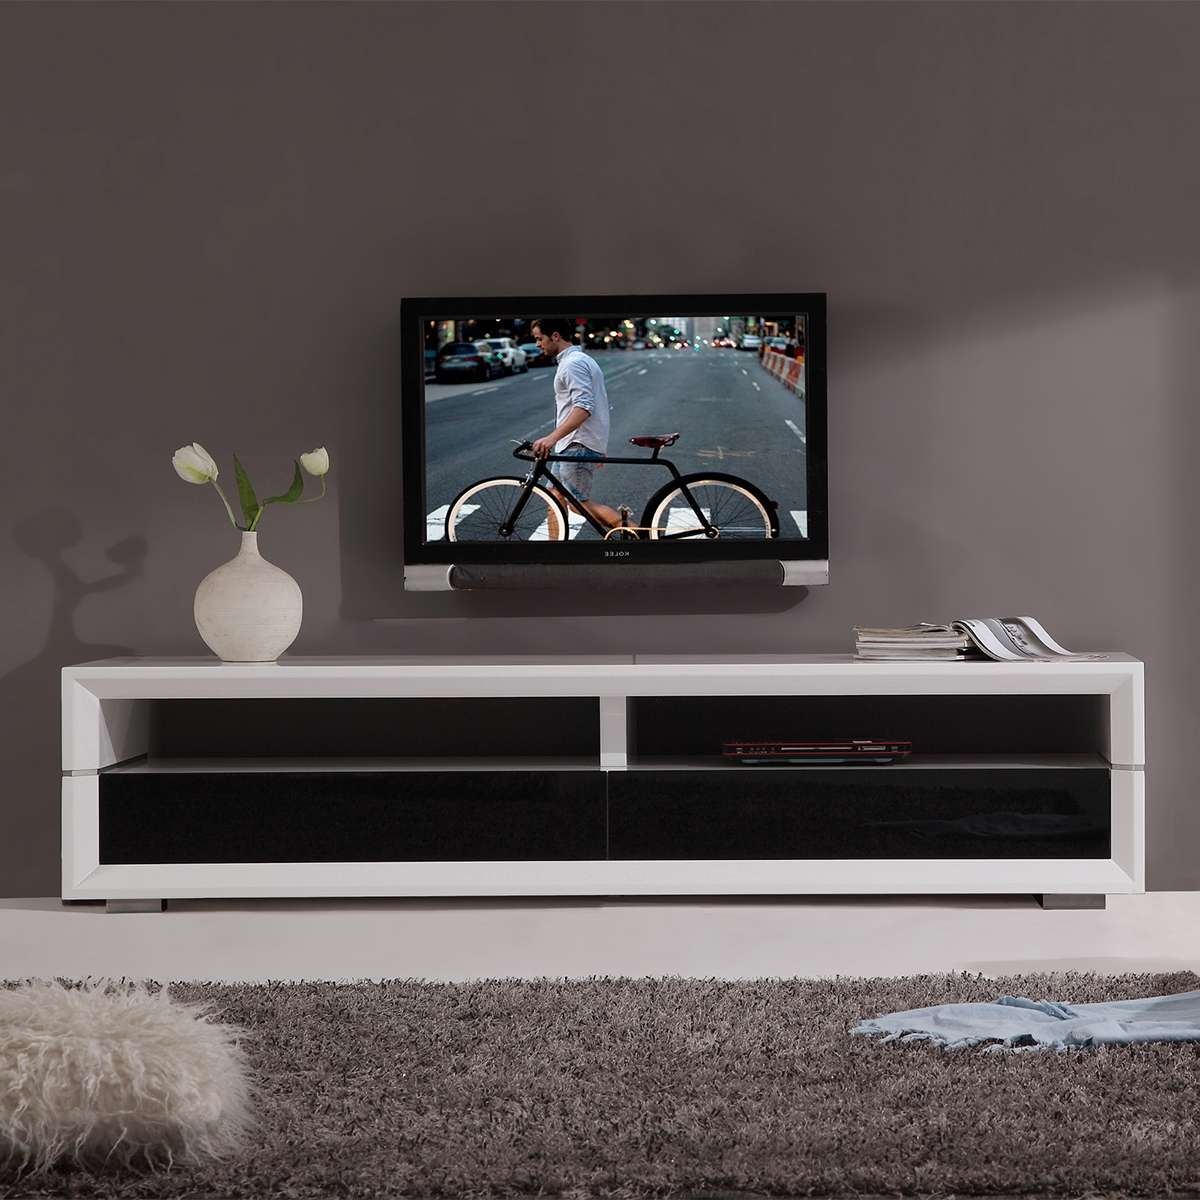 Luxury 80 Inch Tv Stands 43 About Remodel Home Remodel Ideas With Intended For 80 Inch Tv Stands (View 9 of 15)